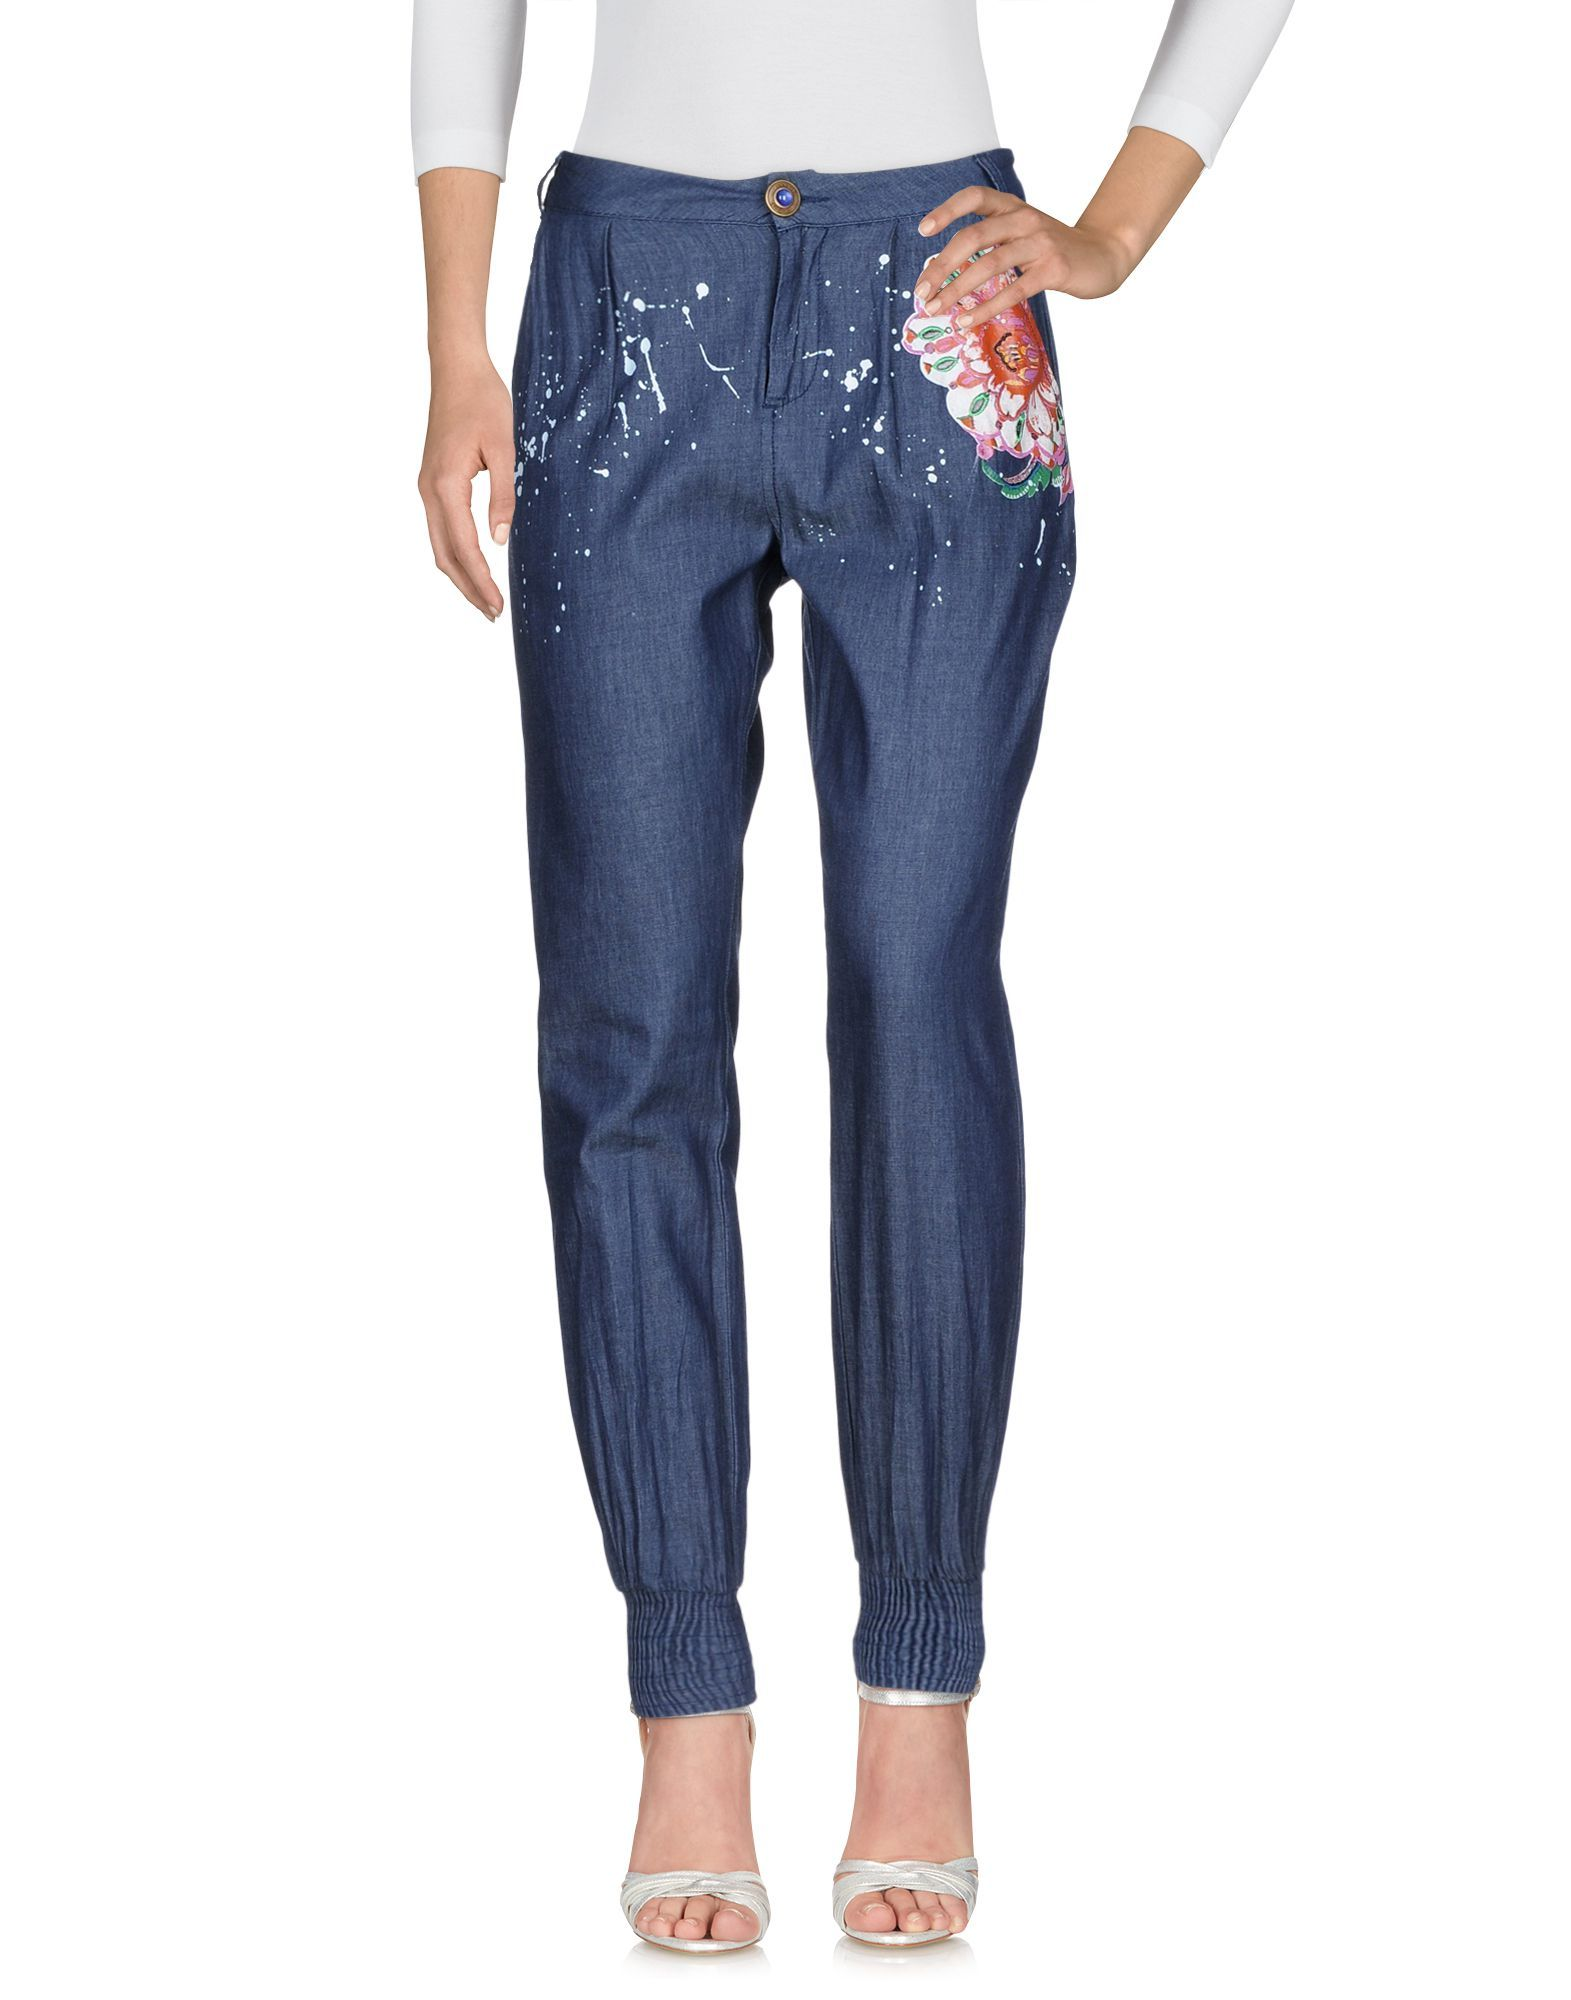 Desigual Blue Cotton Jeans